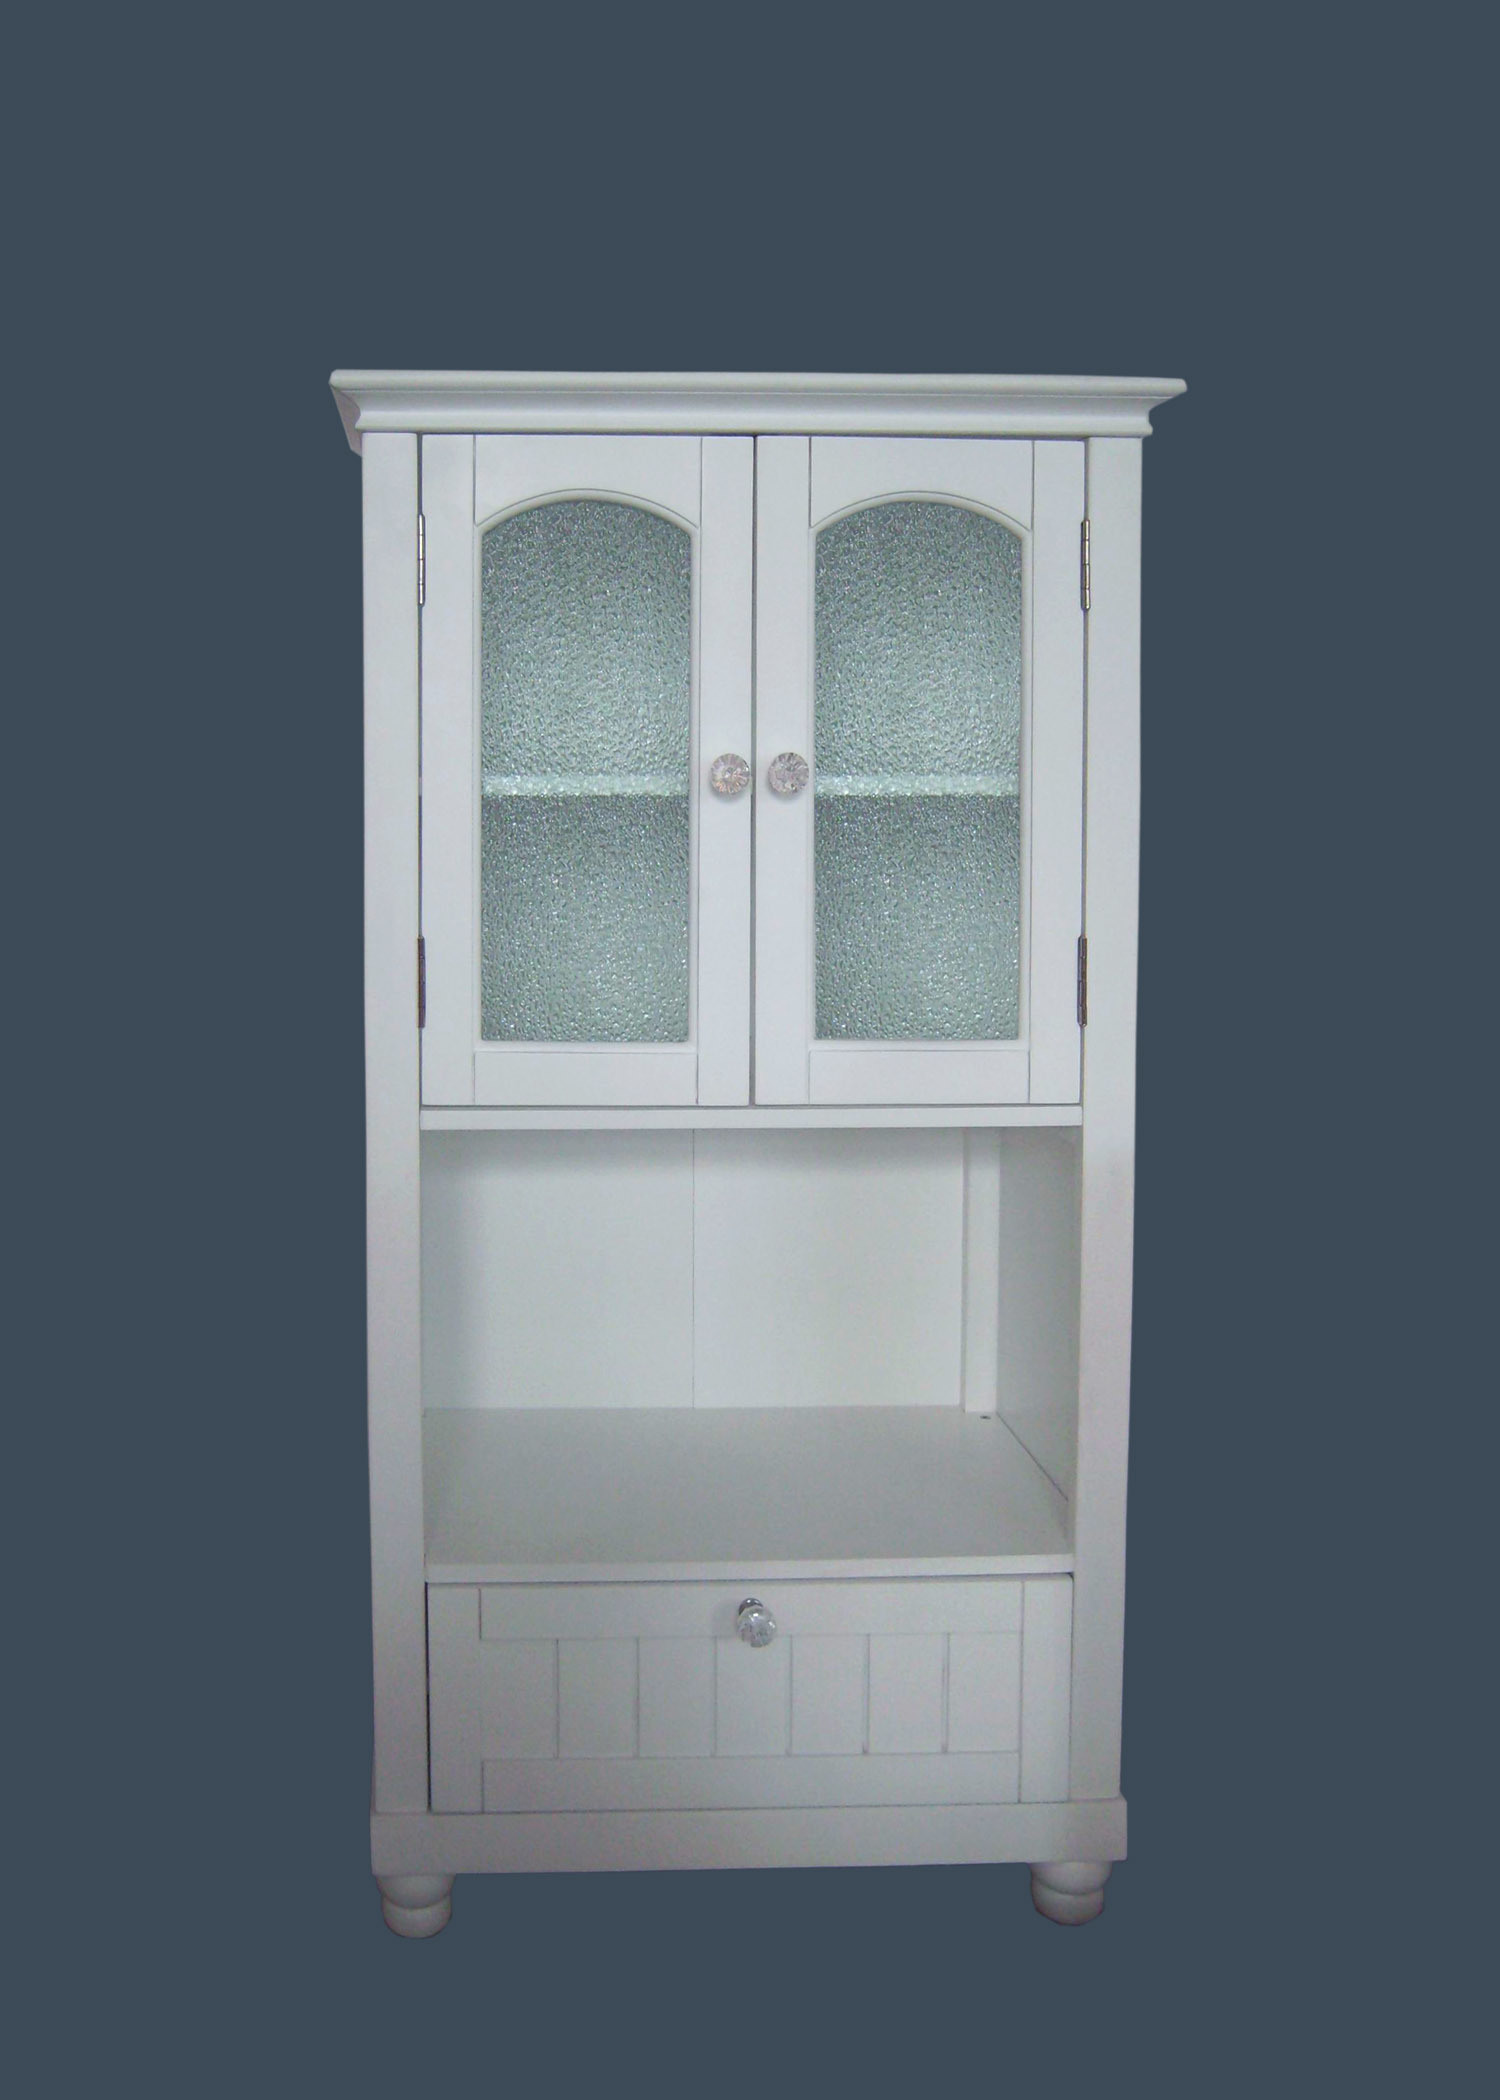 Bathroom vanity cabinet with glass doors cabinet doors Glass cabinet doors